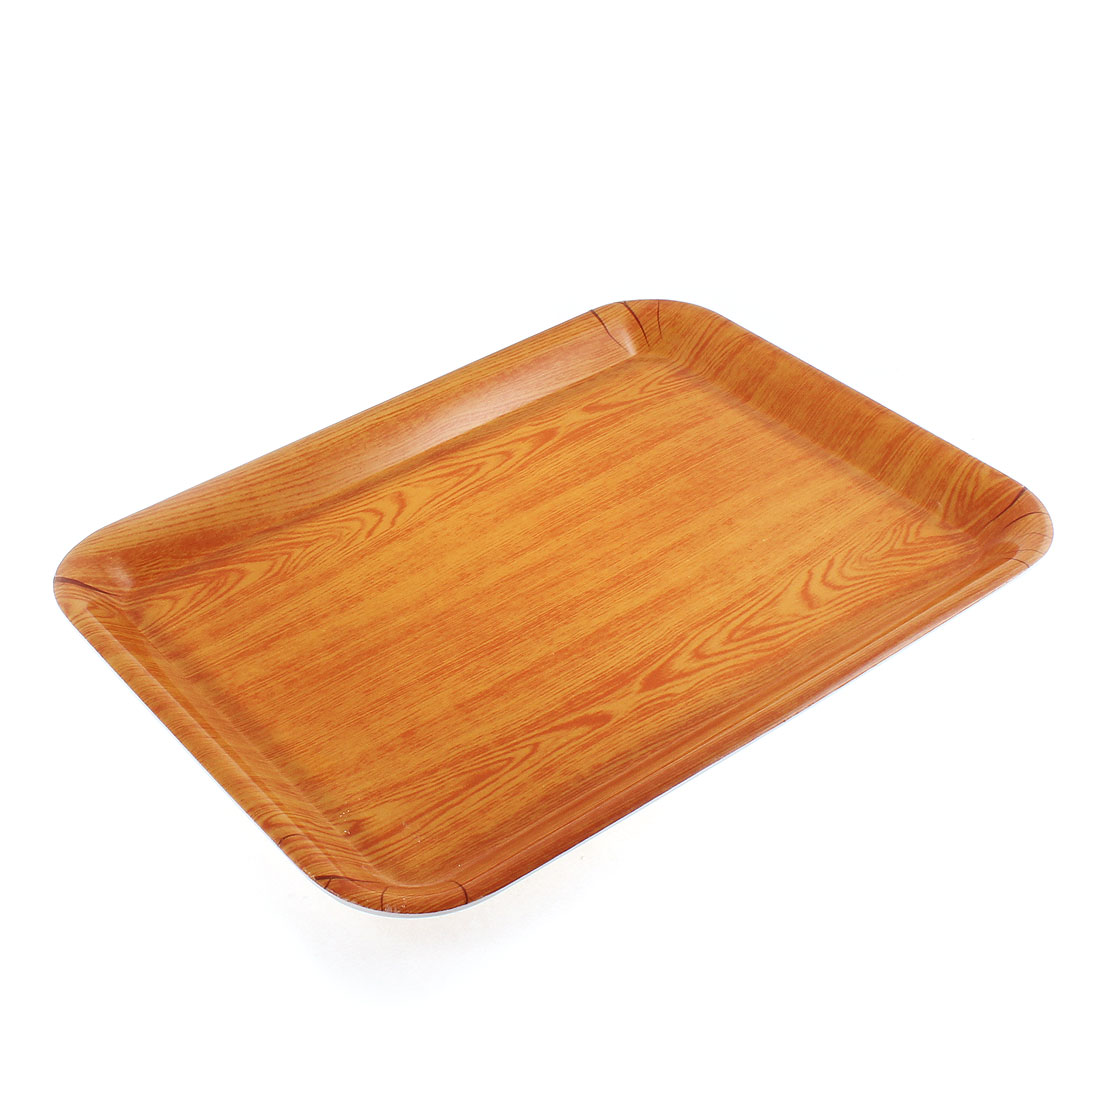 Restaurant Plastic Wood Grain Pattern Rectangle Shaped Food Dinner Serving Tray